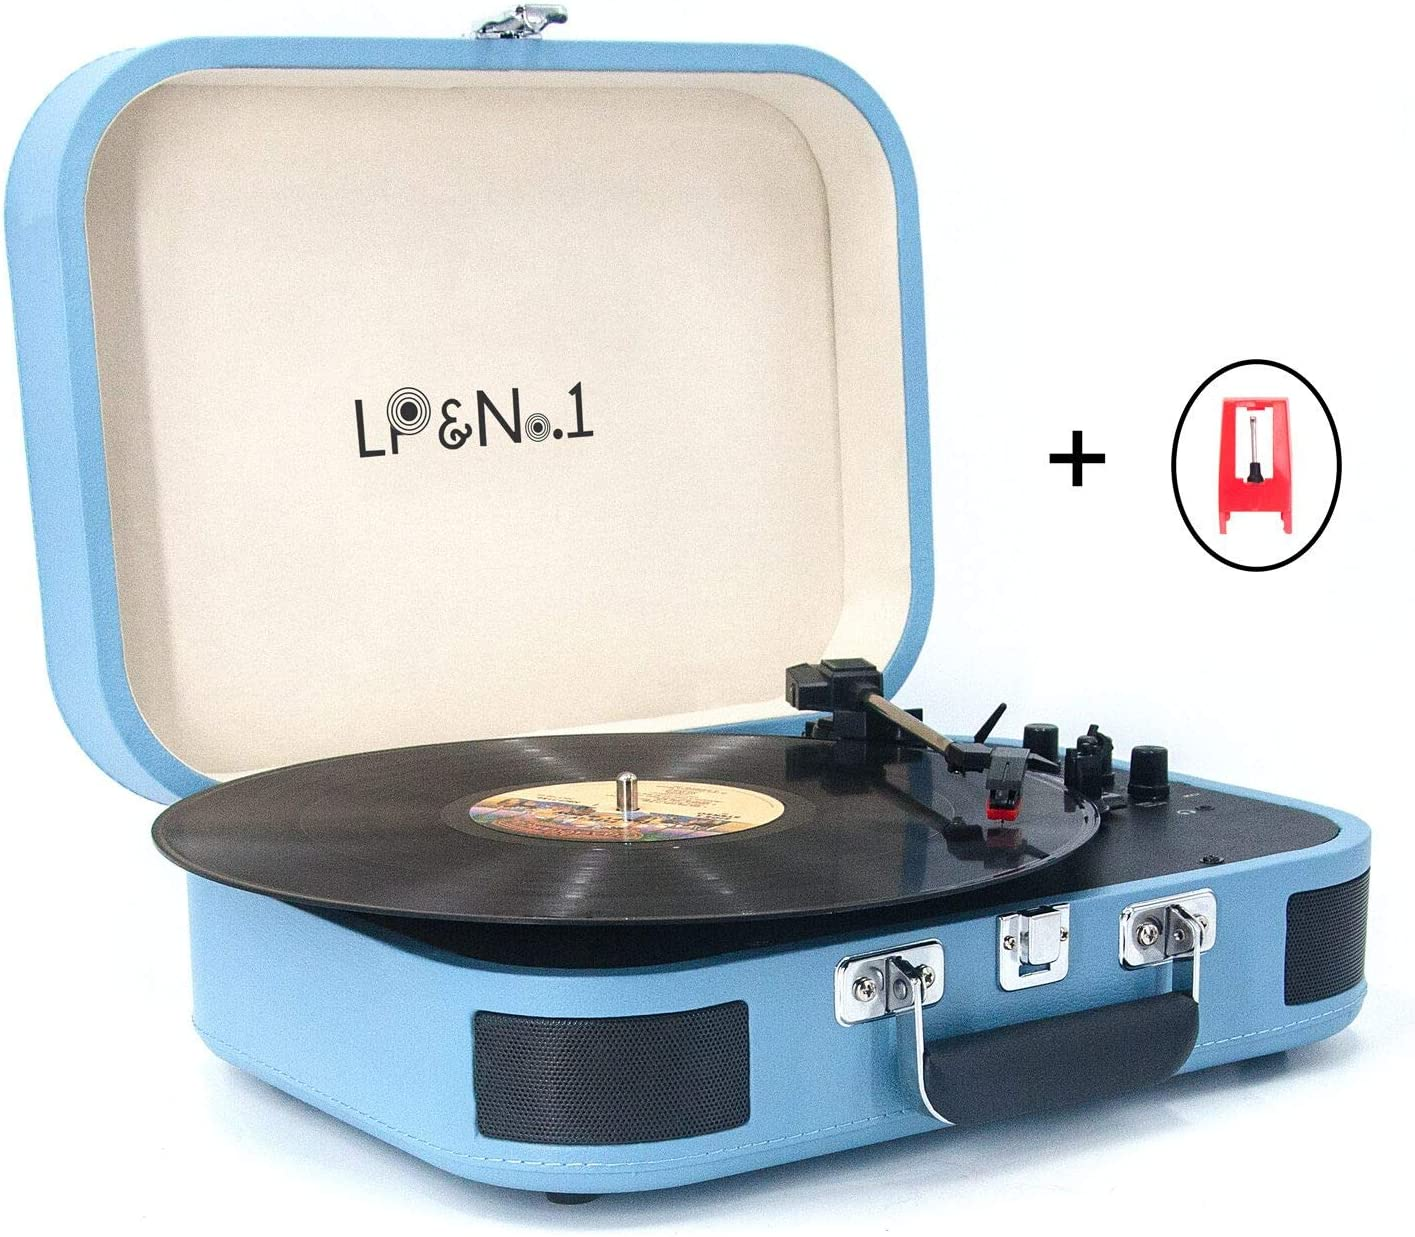 LP&No.1 Portable Bluetooth Turntable with USB Play and Recording,Suitcase 3 Speed Vinyl Record Player with Pitch Control,RCA Output and Aux Input,Blue